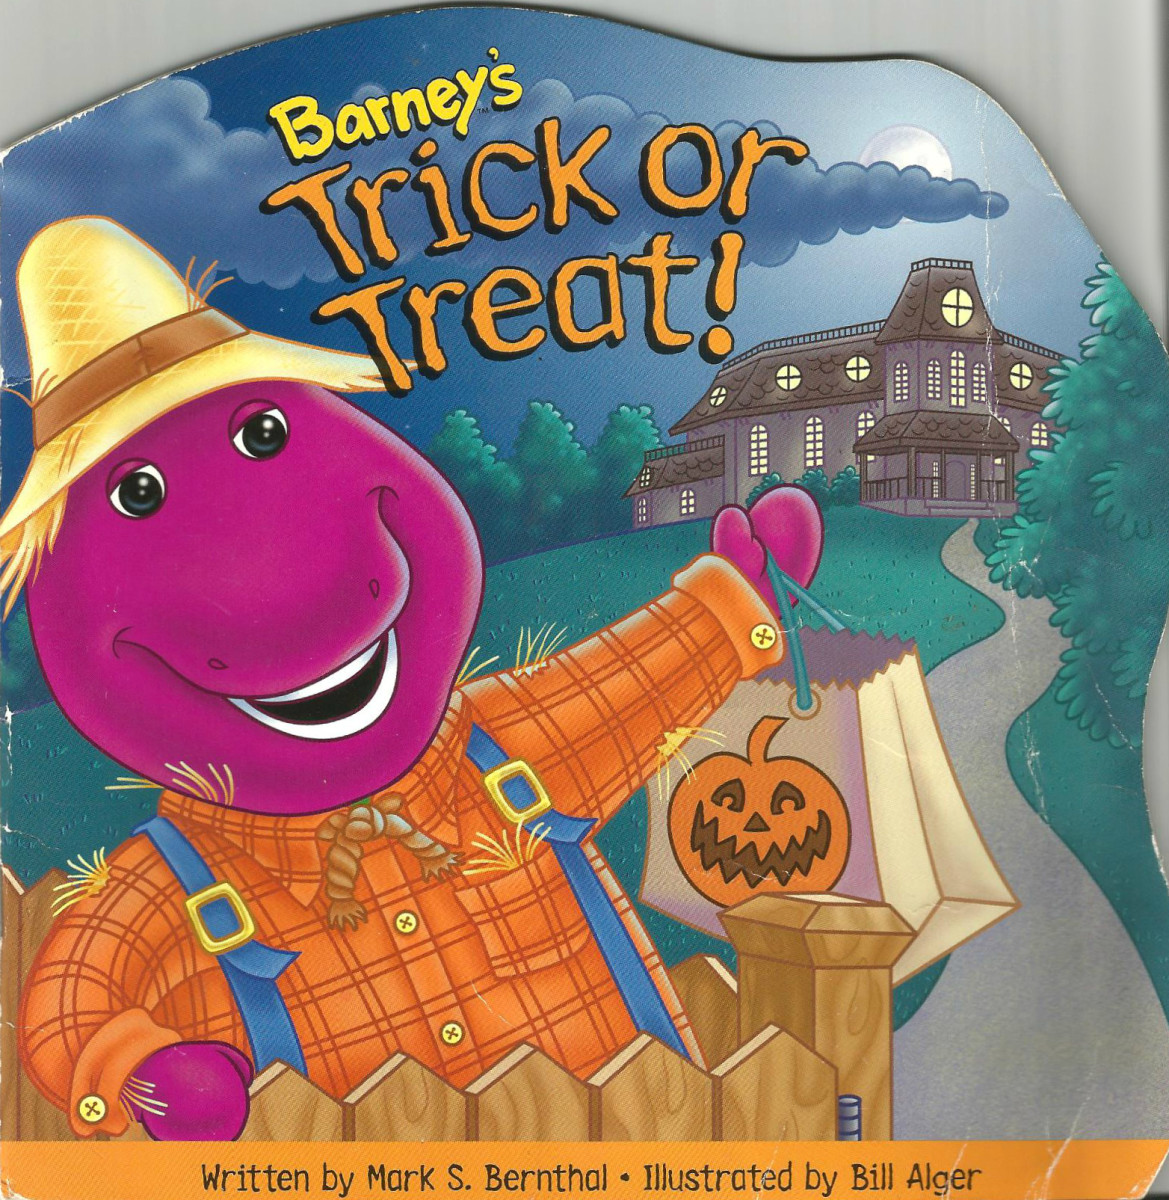 Created by the Lyon Groups and Barney Publishing this wonderful book was published in 1997 and approved by early childhood education specialist. It was written for young child who may be discovering the celebration of Halloween for the firs time.